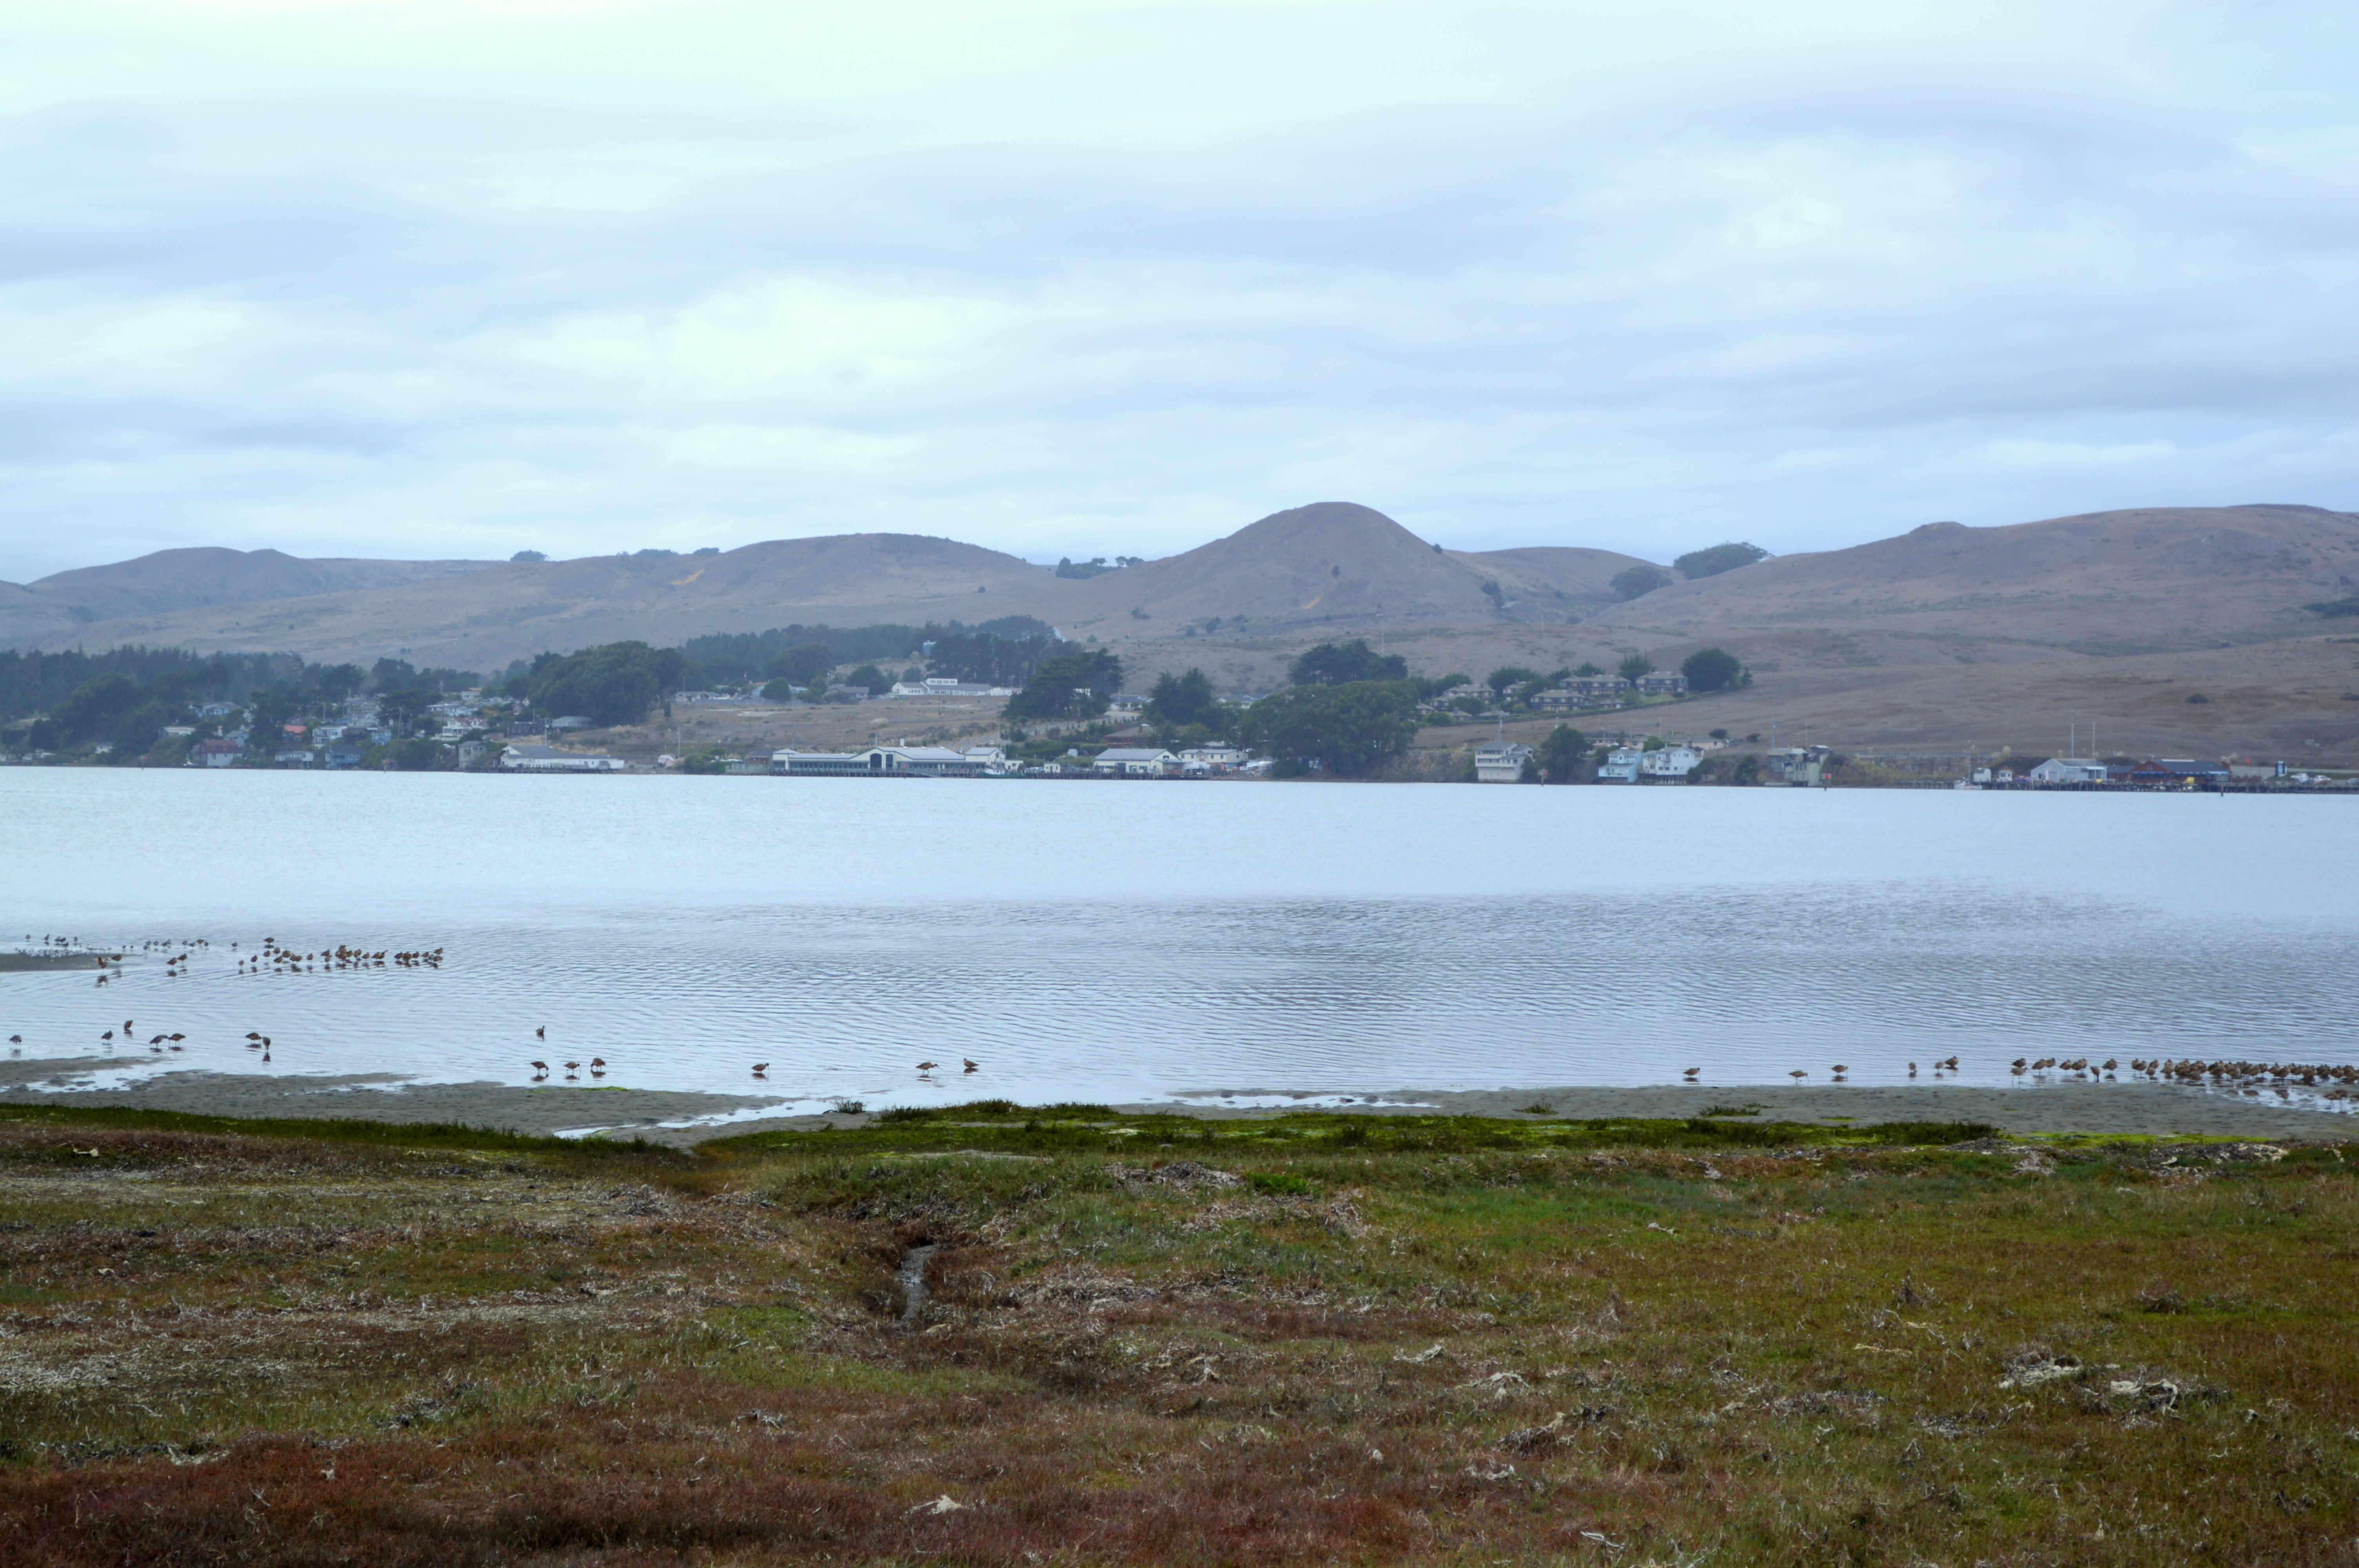 The Town of Bodega Bay and Harbor